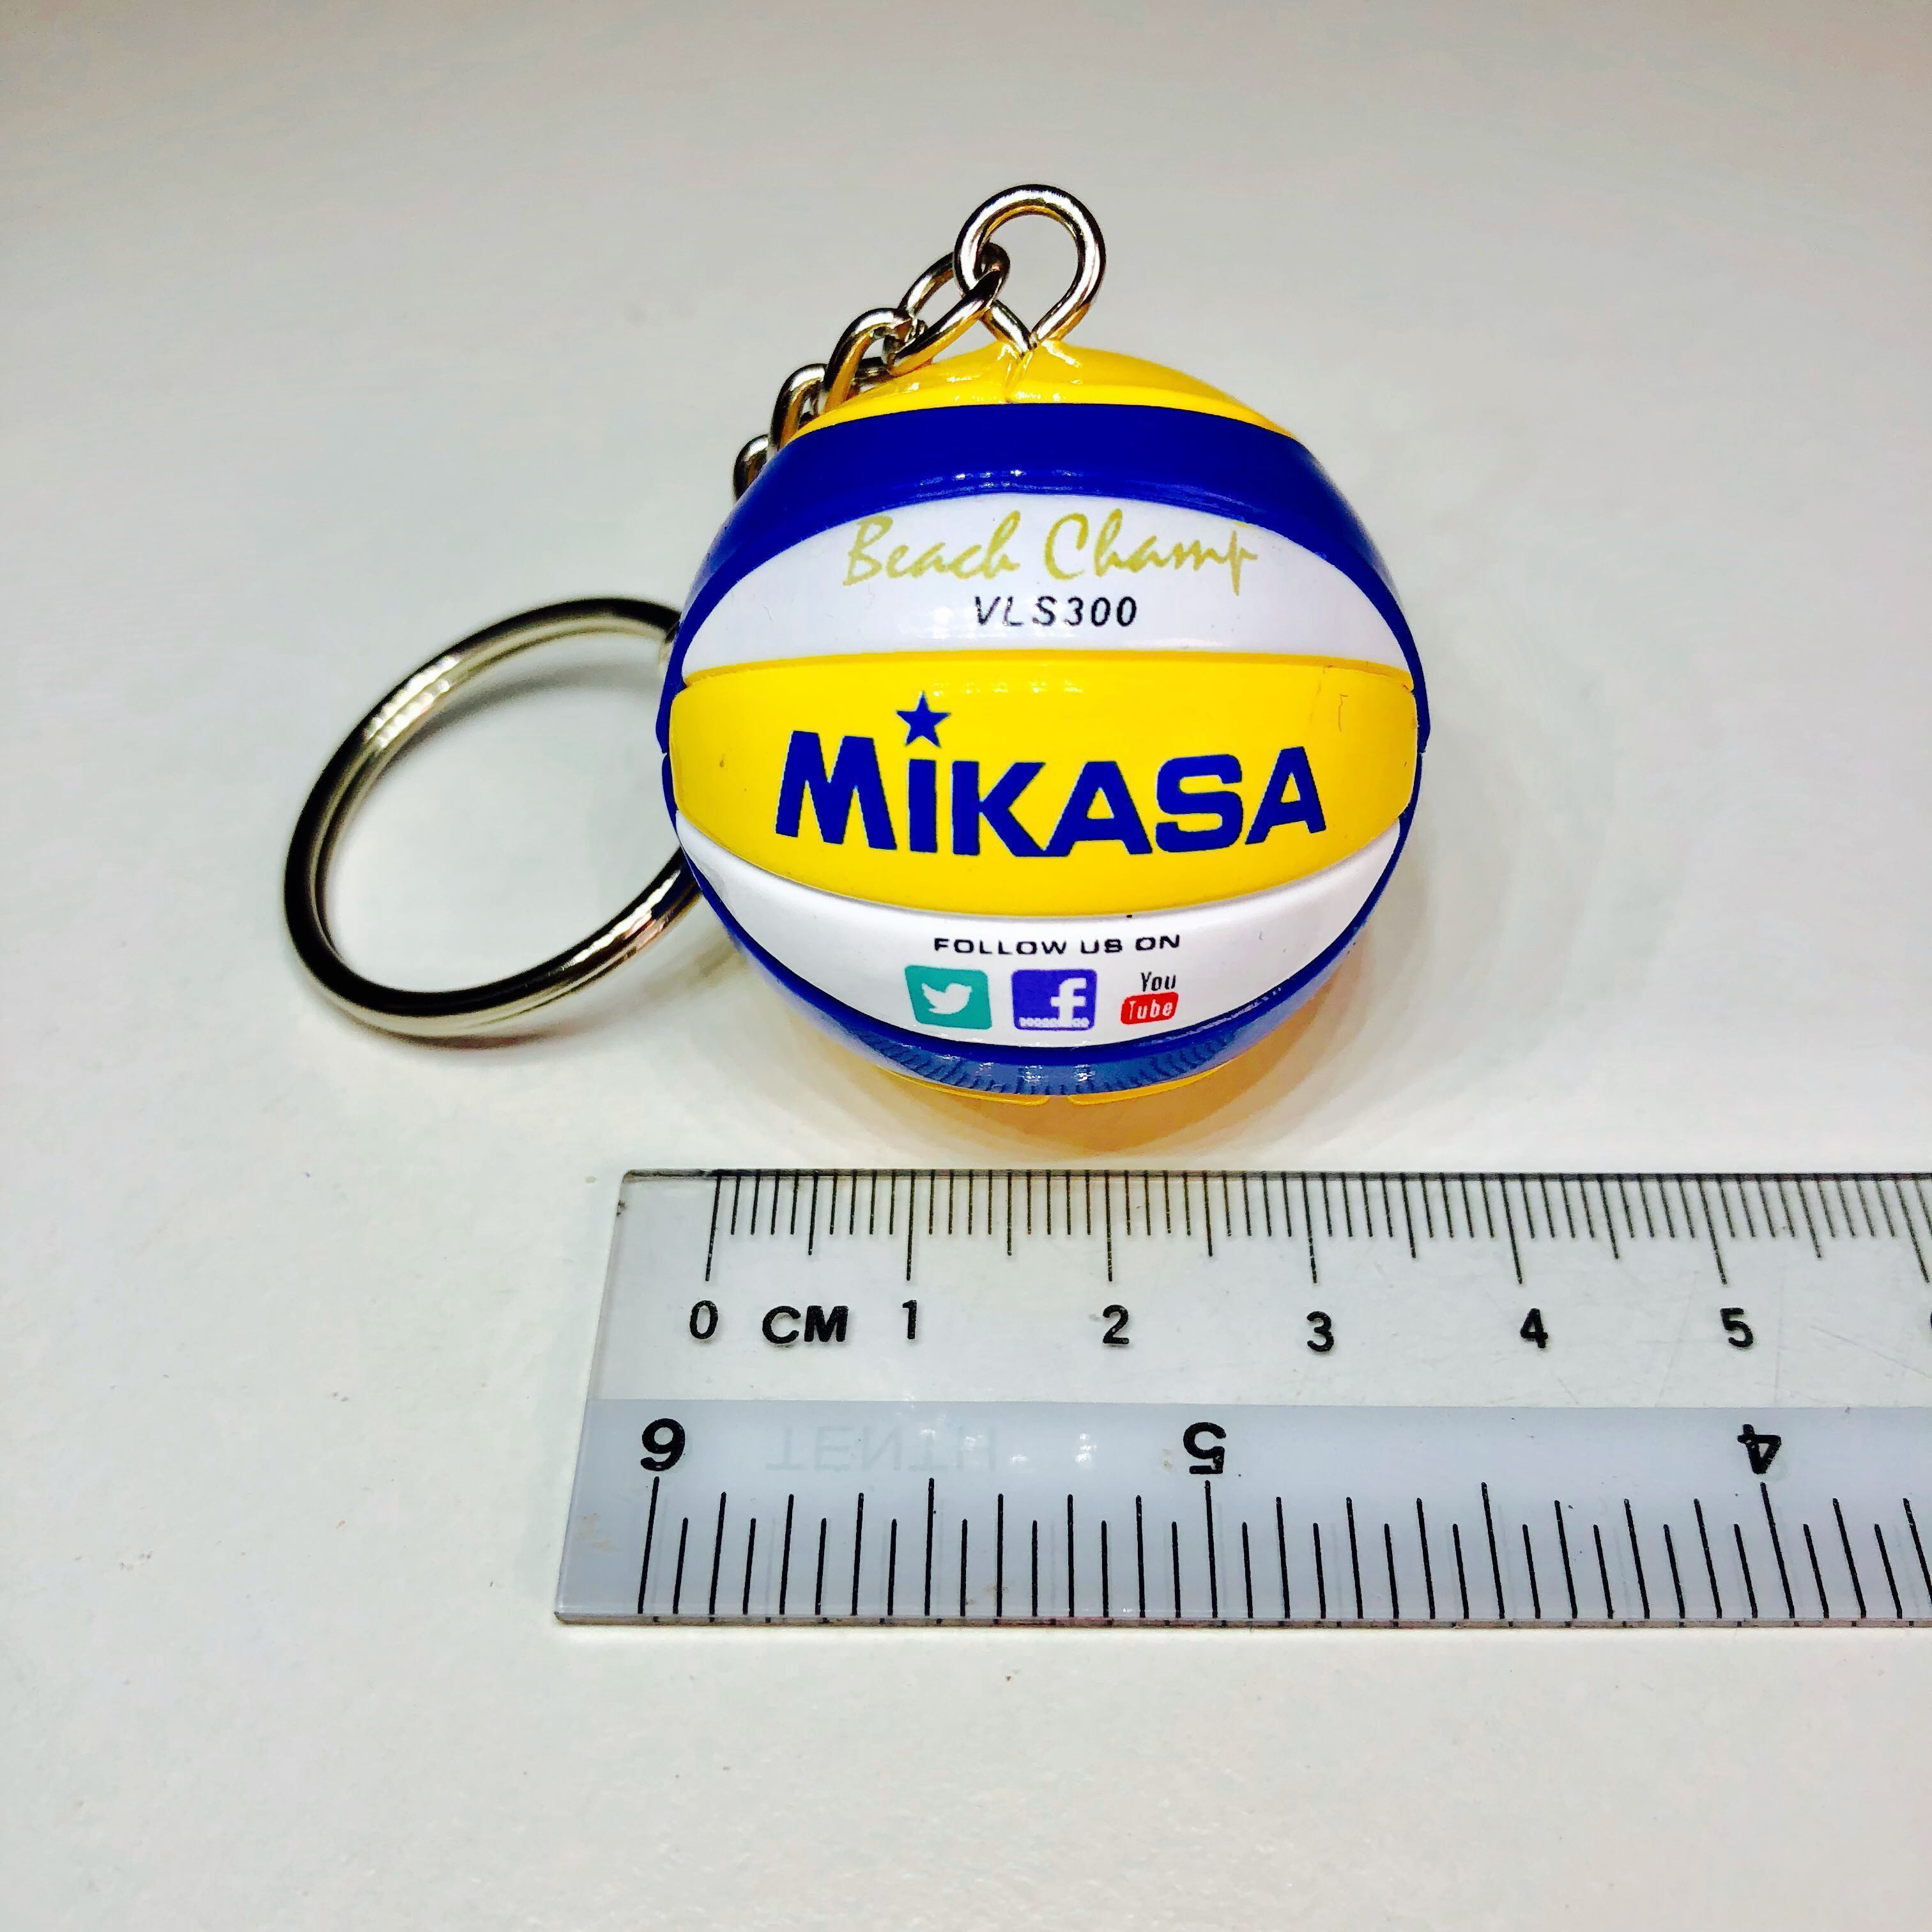 Vb4 Beach Volleyball Keychain Men S Fashion Accessories On Carousell